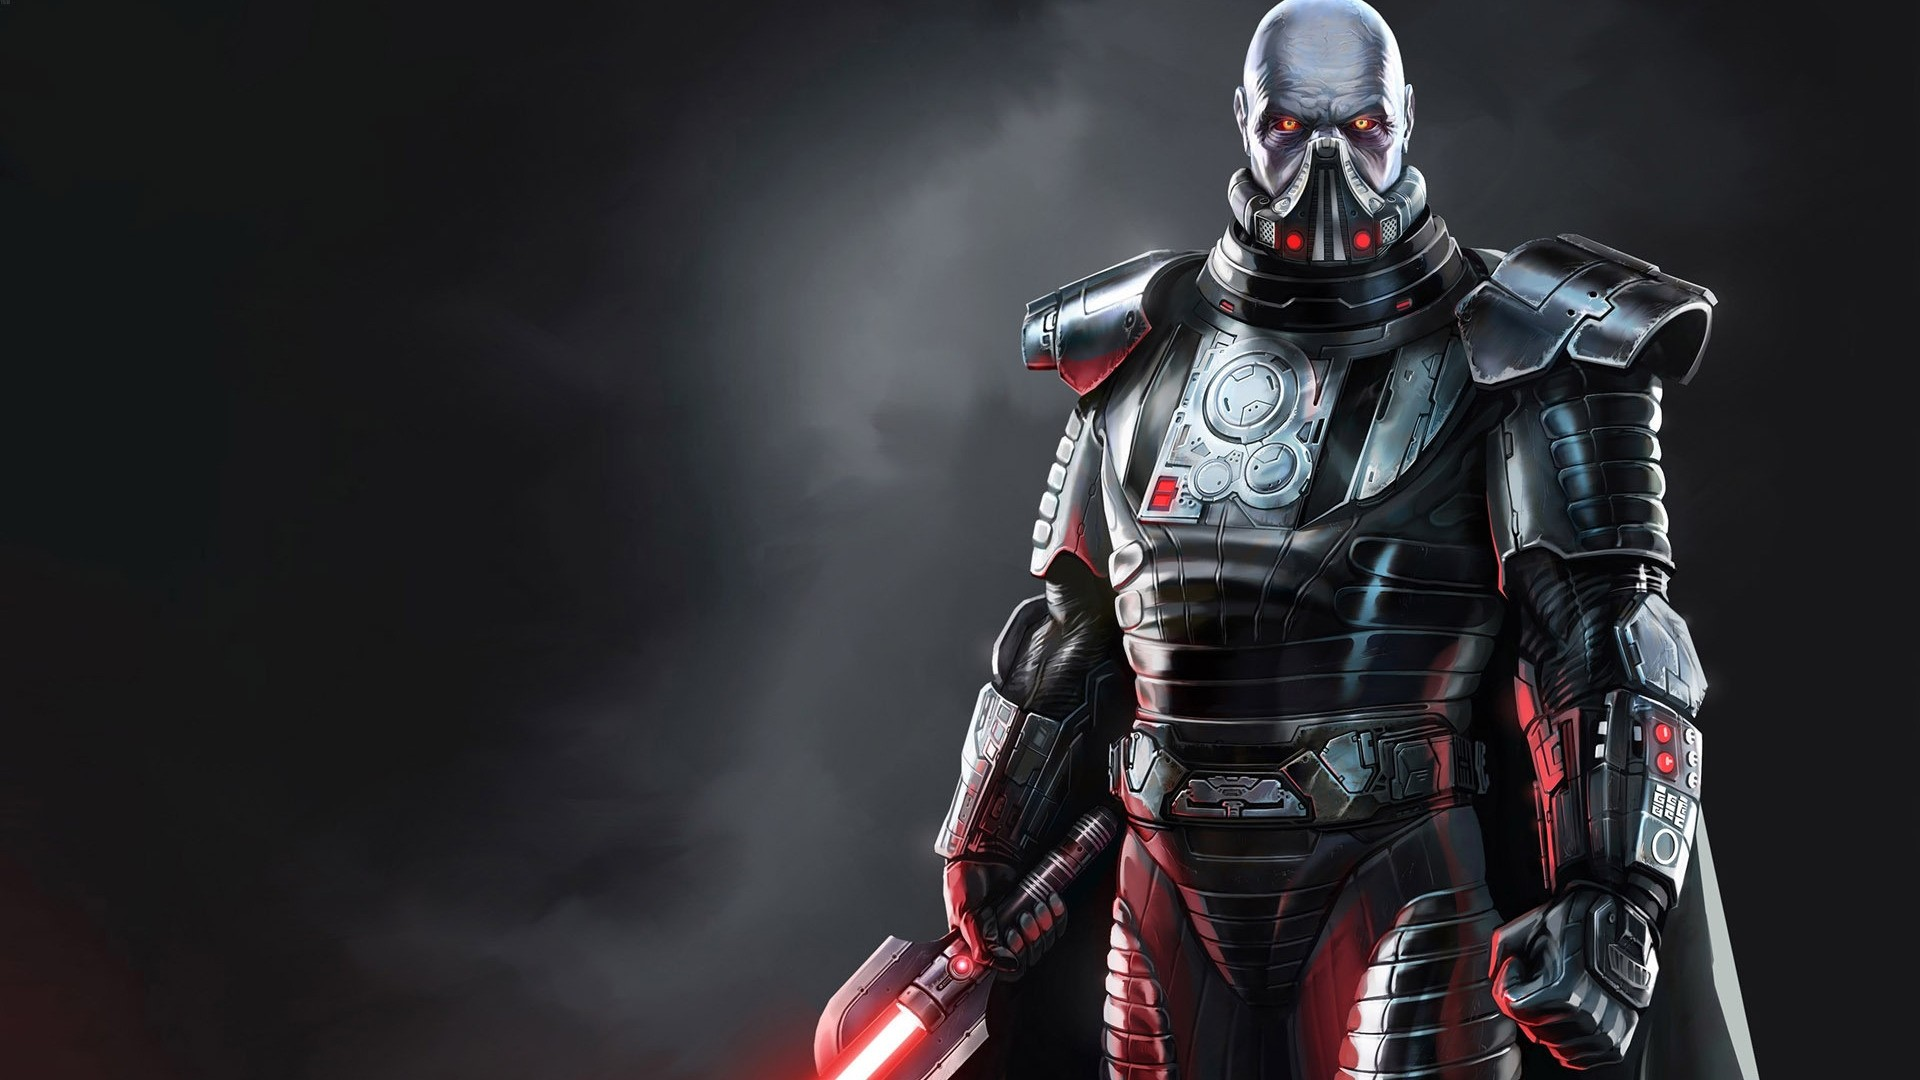 Star Wars Sith Wallpapers High Definition